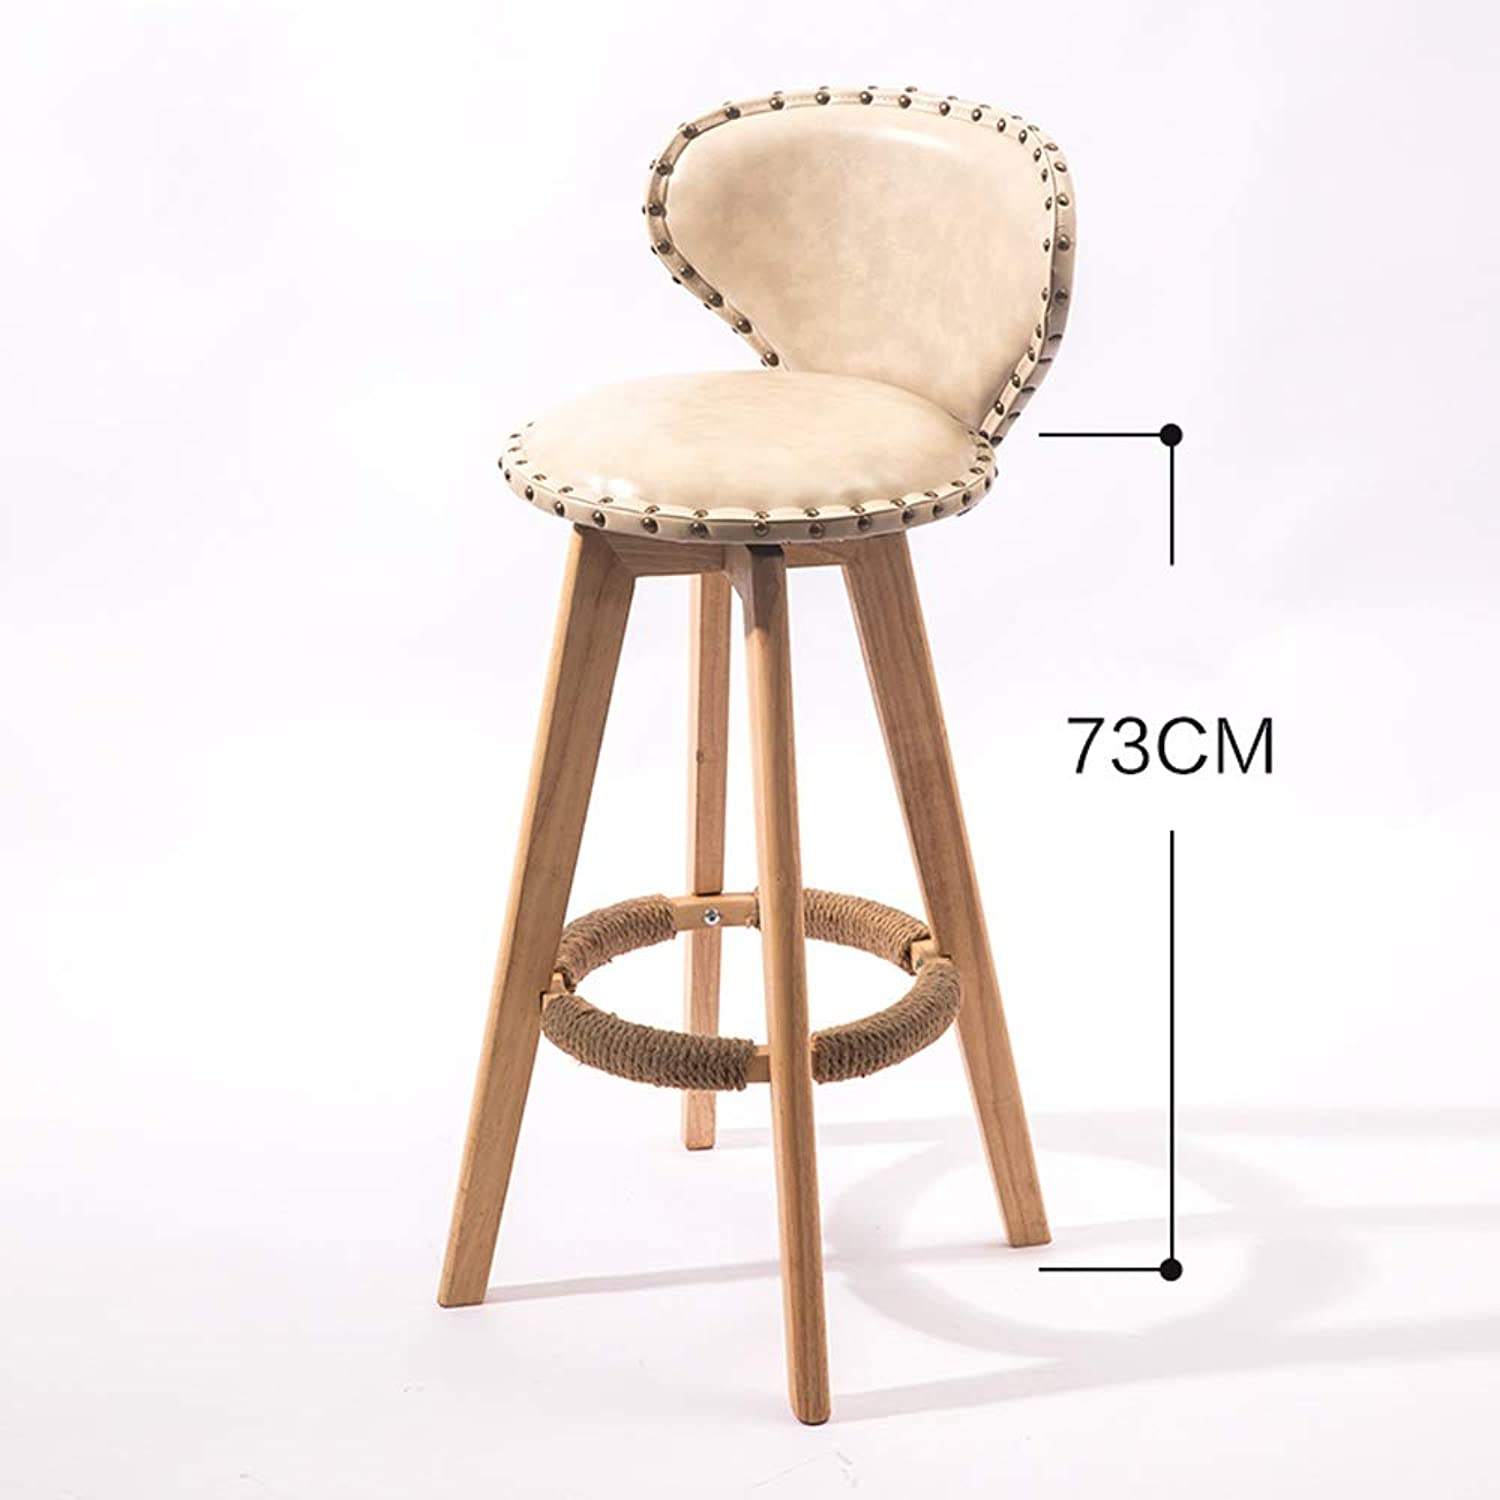 redatable Solid Wood bar Chair Creative bar Stool Personality high Stool Suitable for Coffee Shop Living Room Club 29  15 inch SUGEWANJBD (color   White)